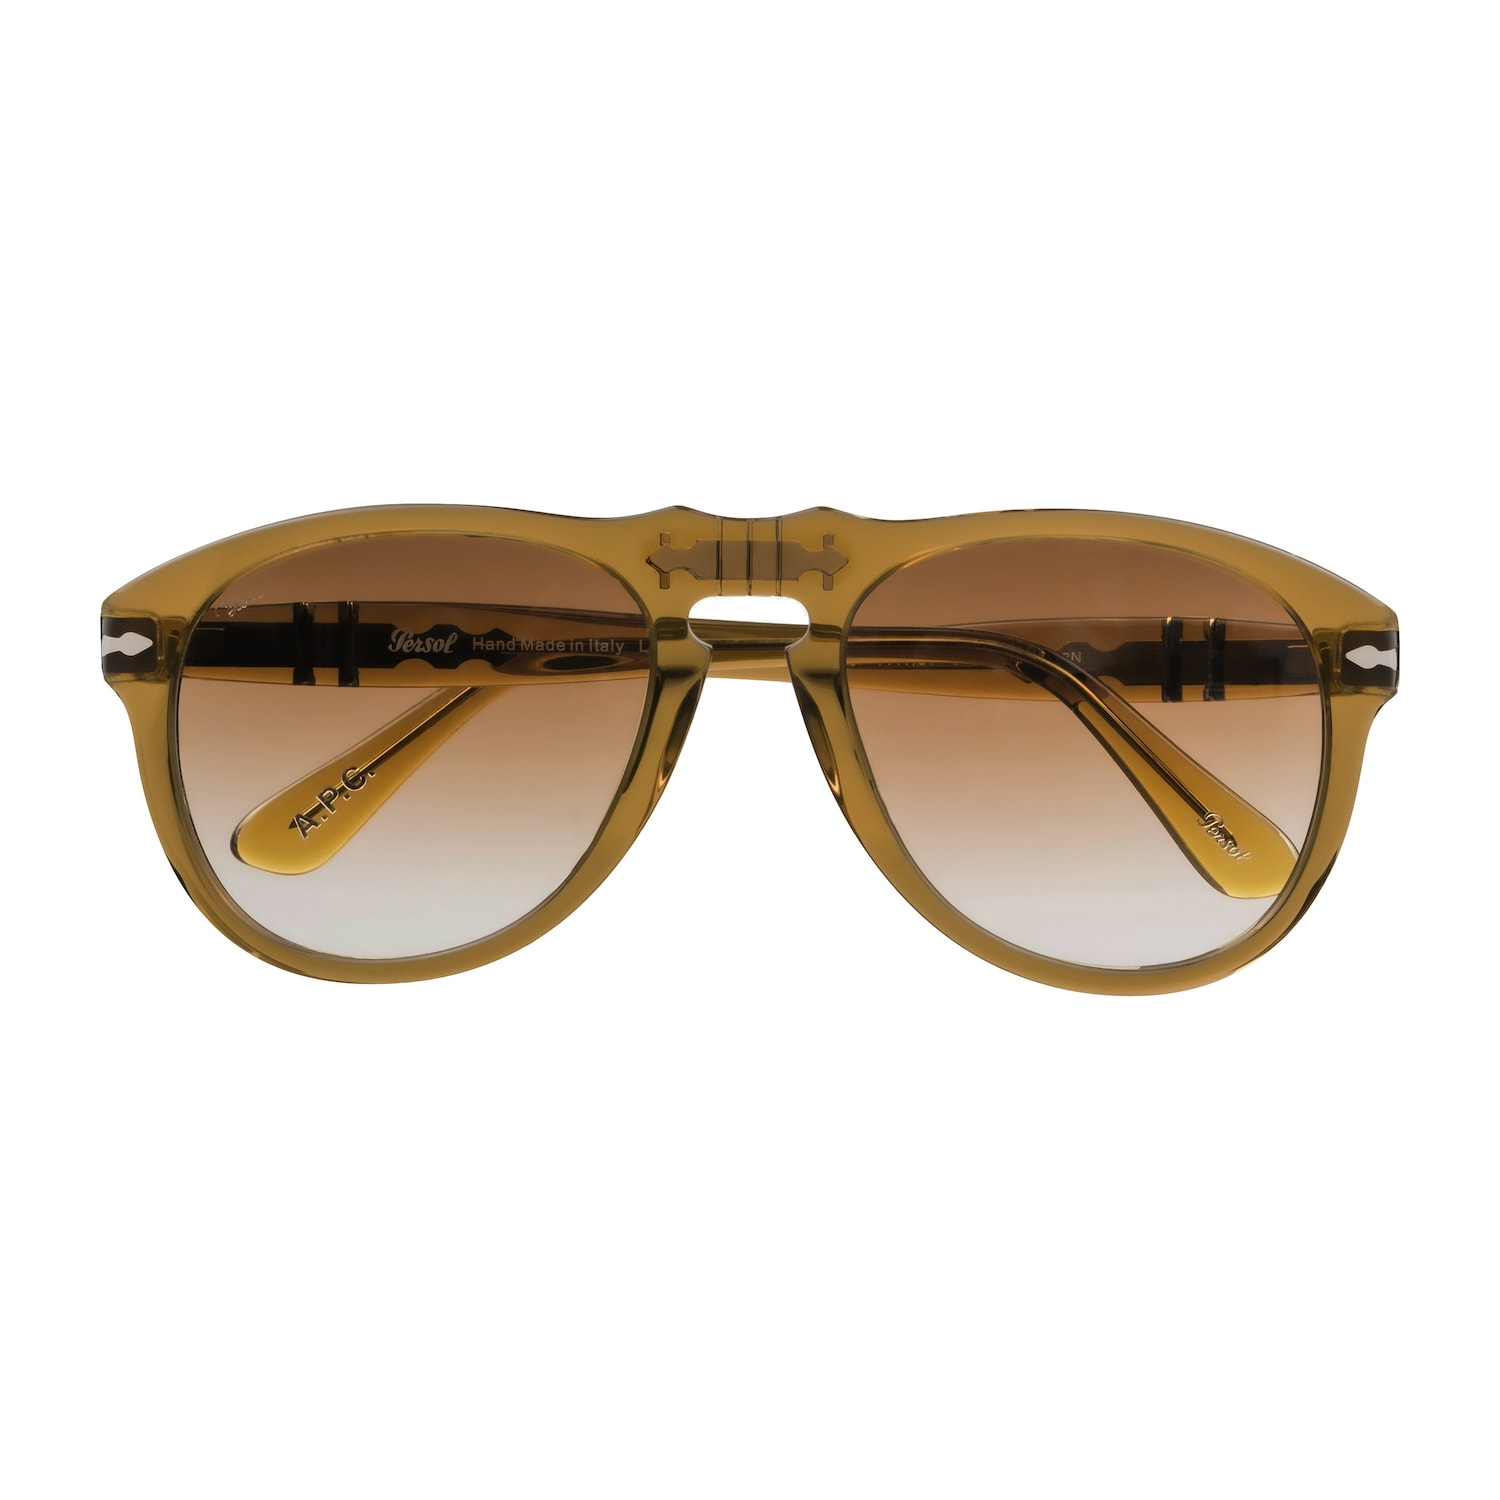 Complex Best Style Releases A.P.C. x Persol sunglasses